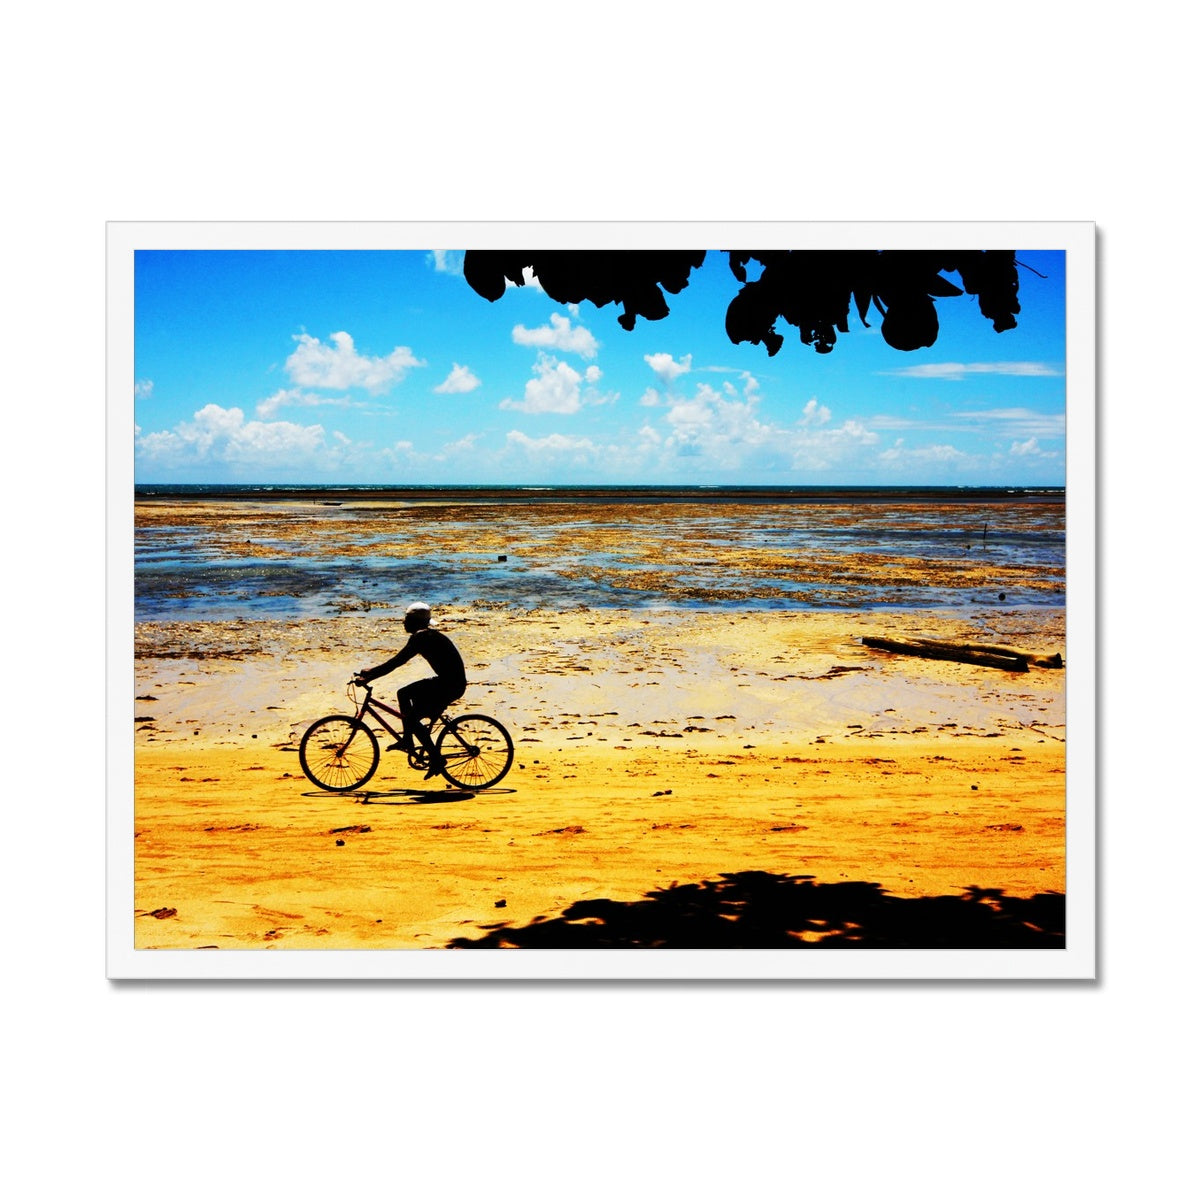 Bahia Bicyle Dreams - Brasil Framed Print